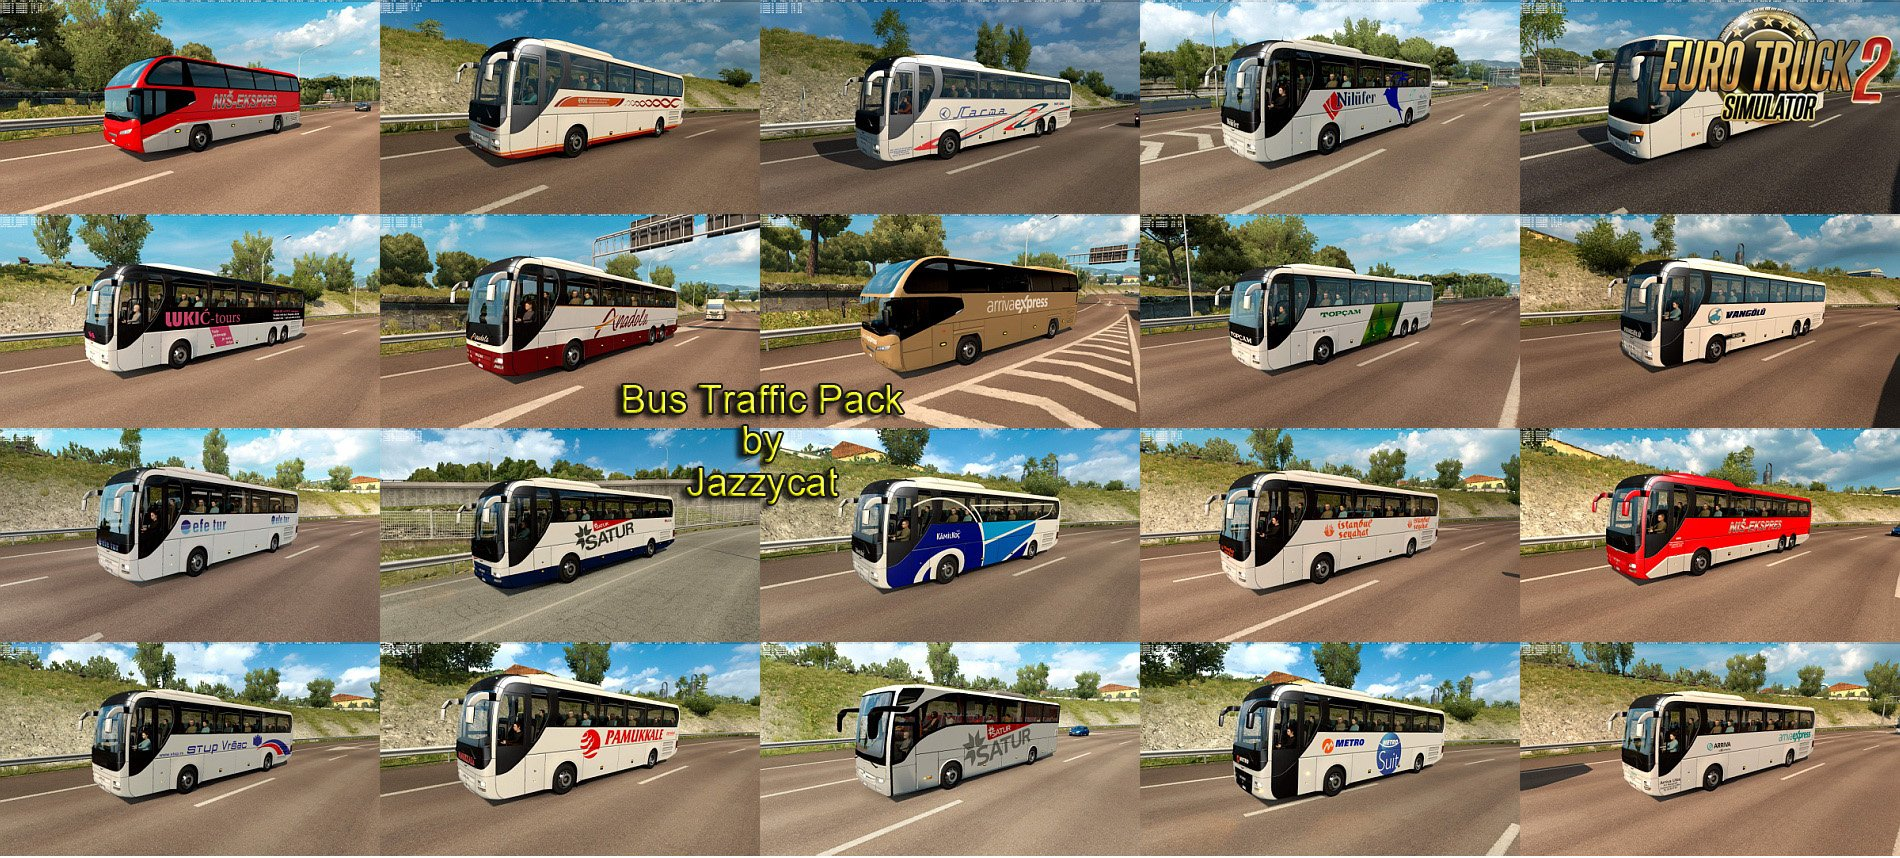 Bus Traffic Pack v3.8 by Jazzycat